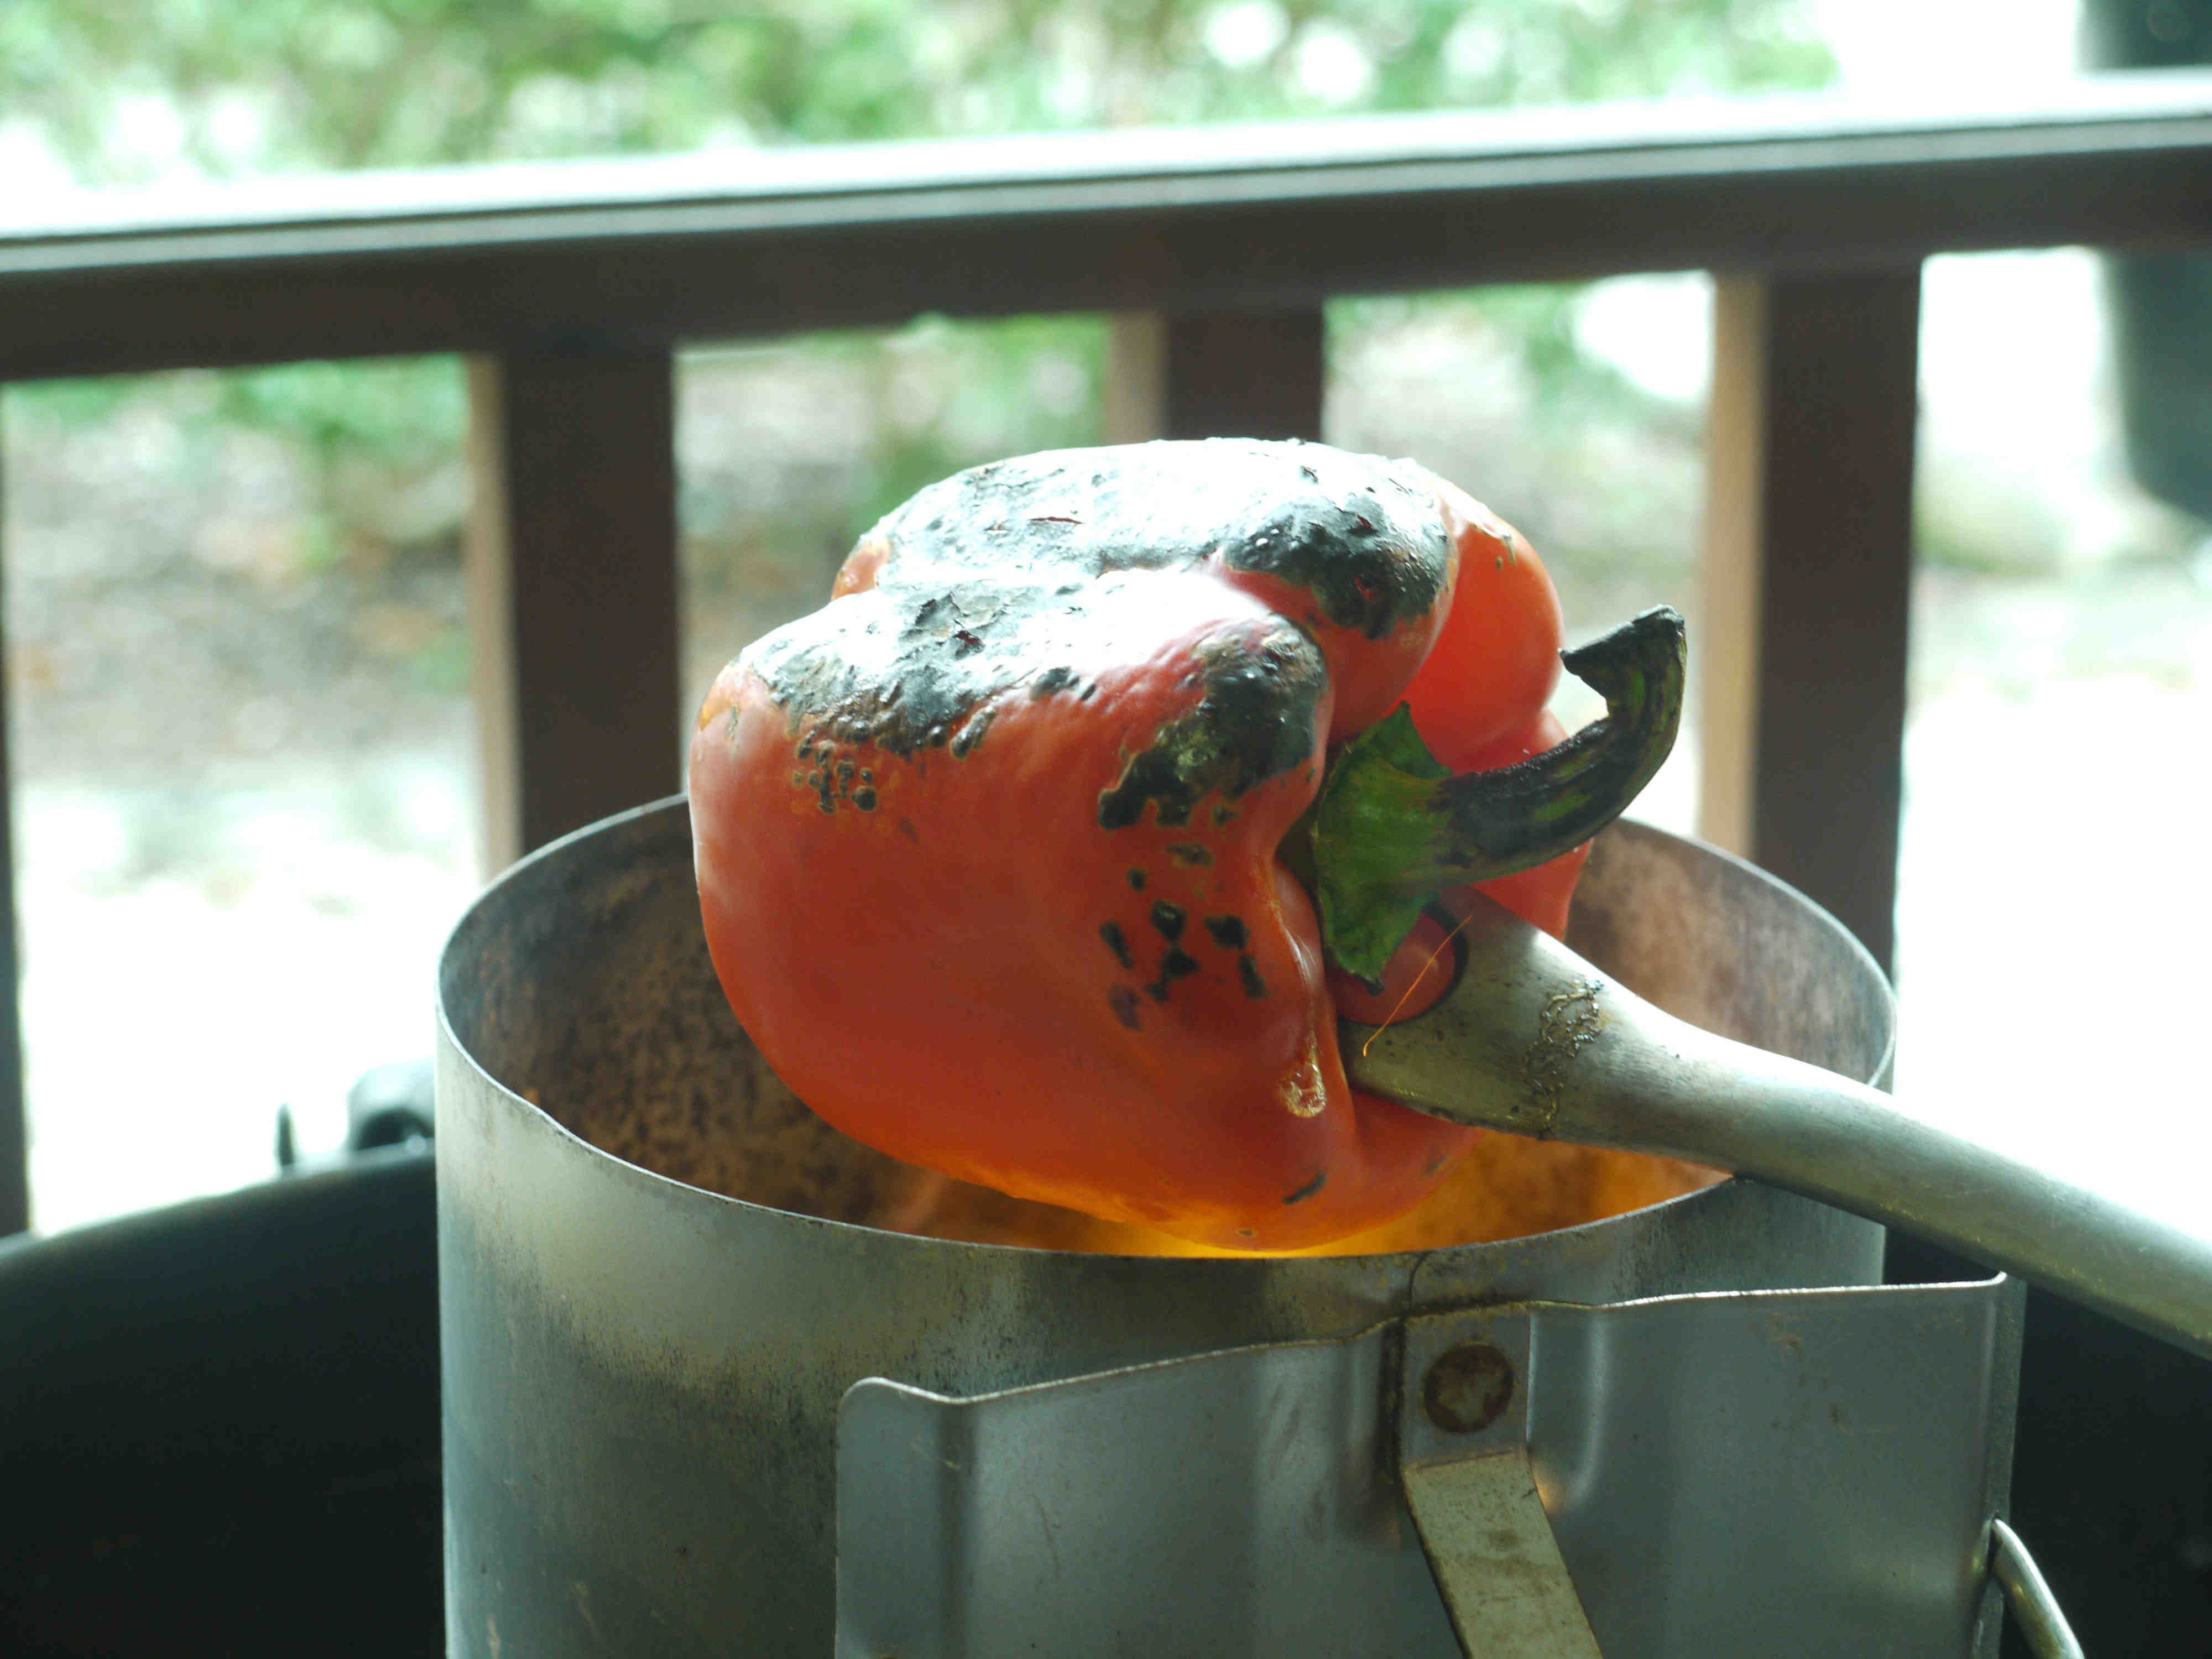 Charring the red pepper